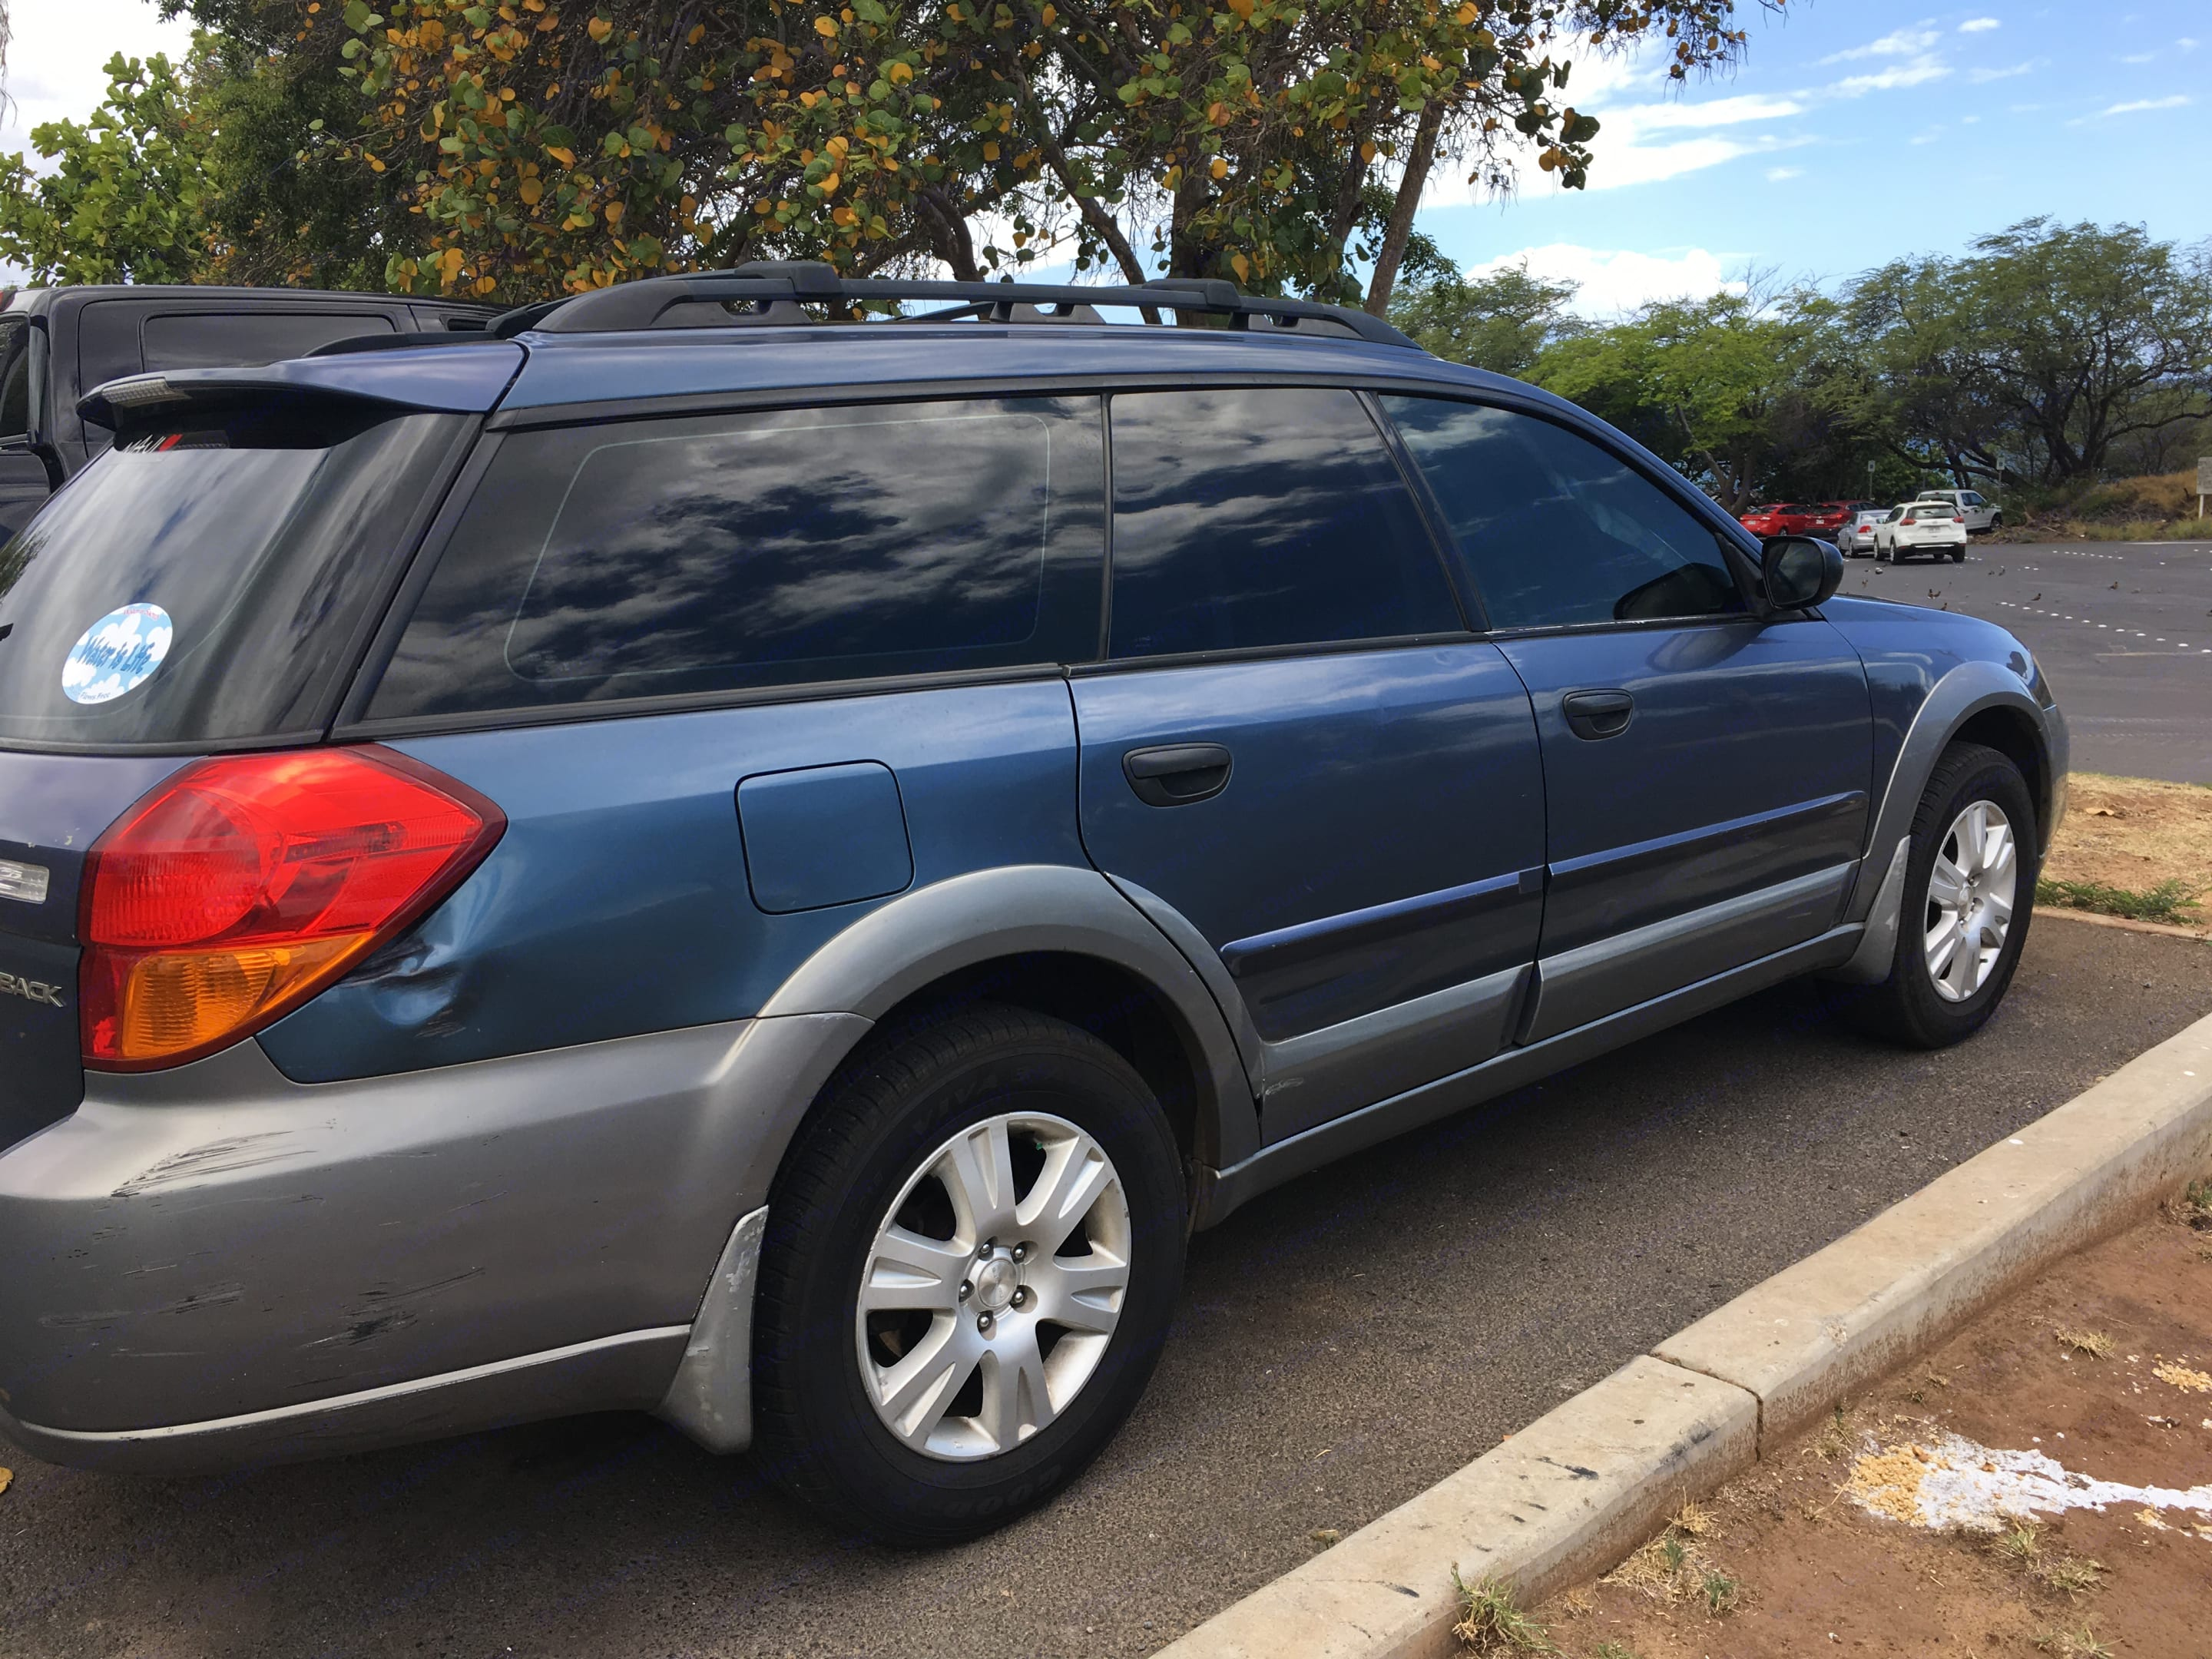 Tinted widows for privacy & keeping your belongings cool:-). Subaru Outback 2005